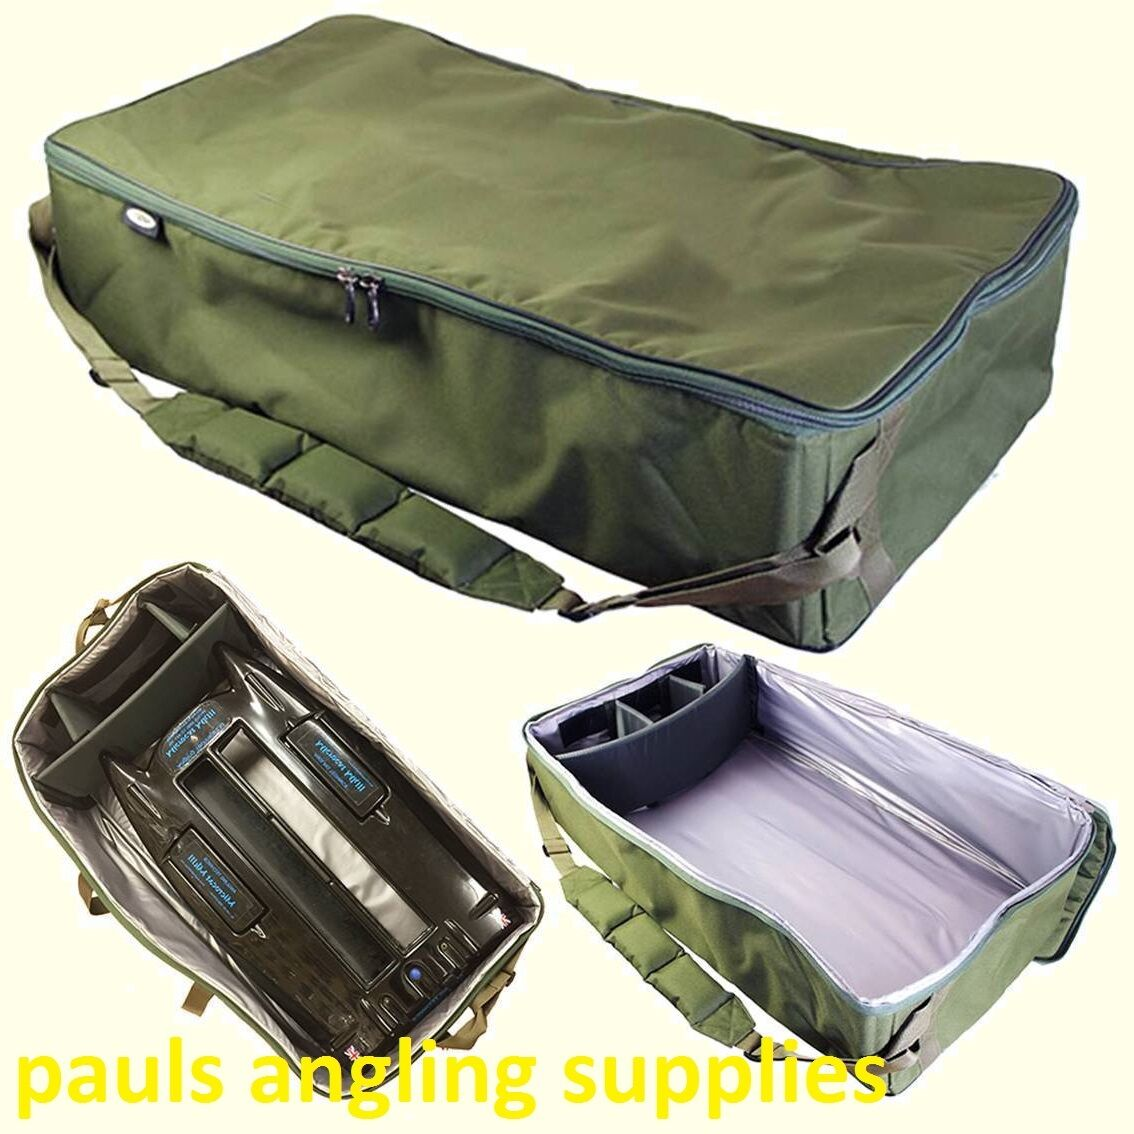 Extra Large Padded Fishing Bait Boat Bag Carryall  with Shoulder strap